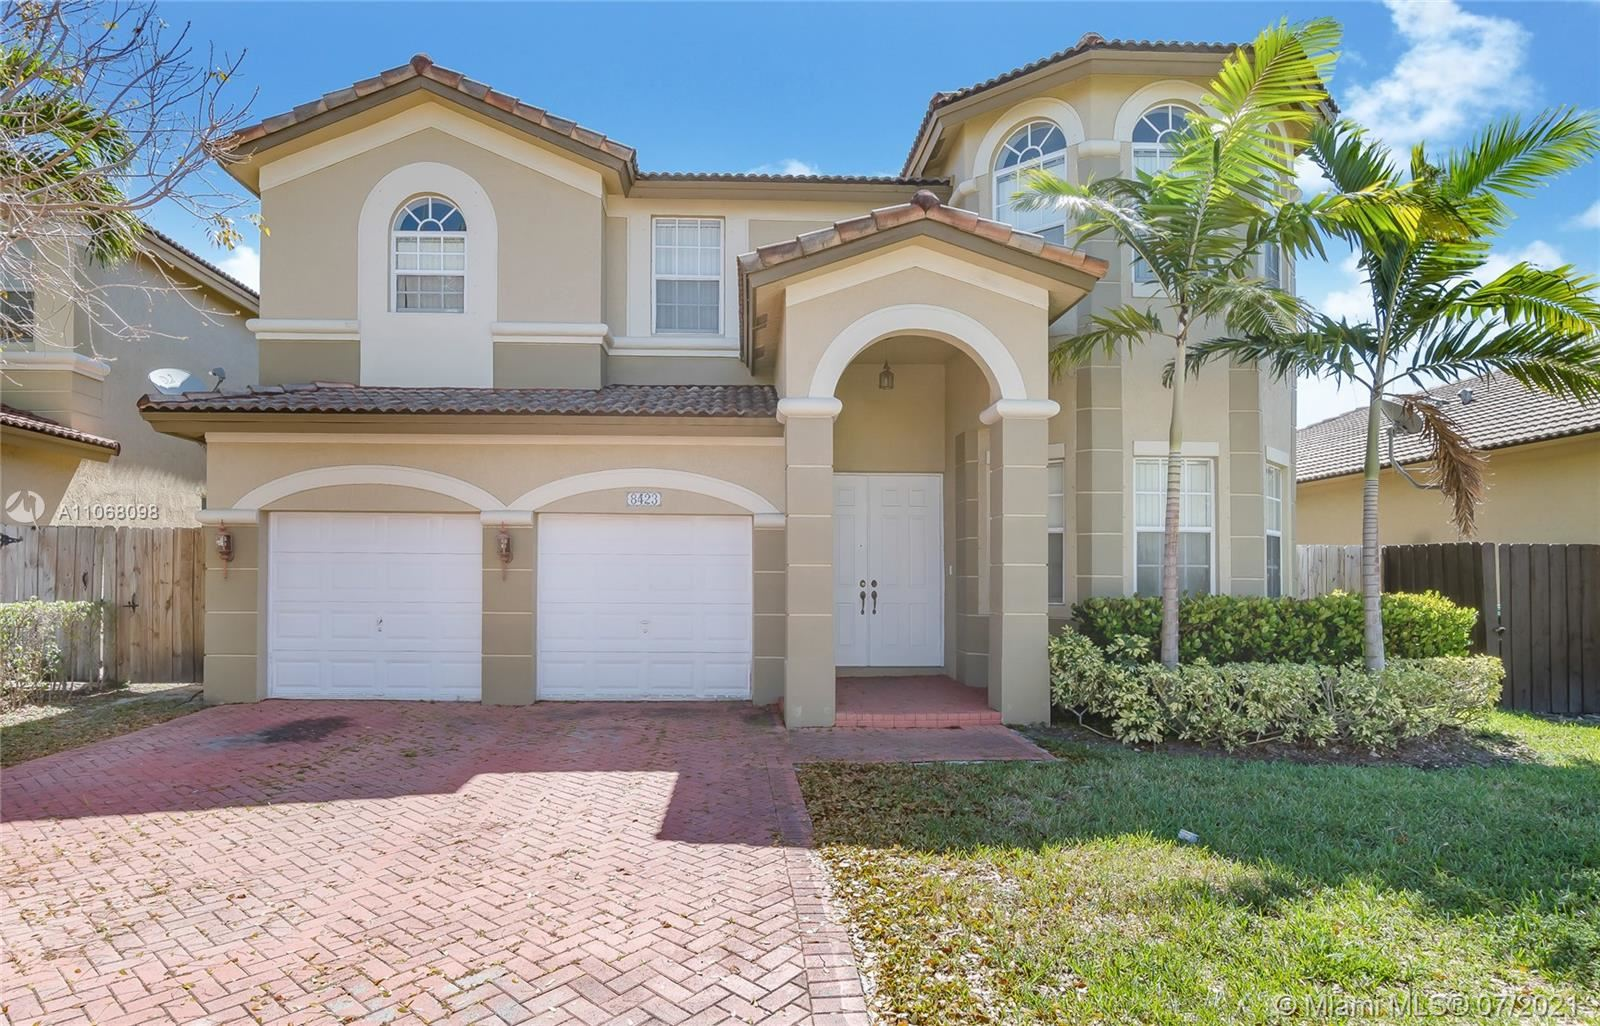 8423 NW 110th Ave, Doral, FL 33178 - #: A11068098